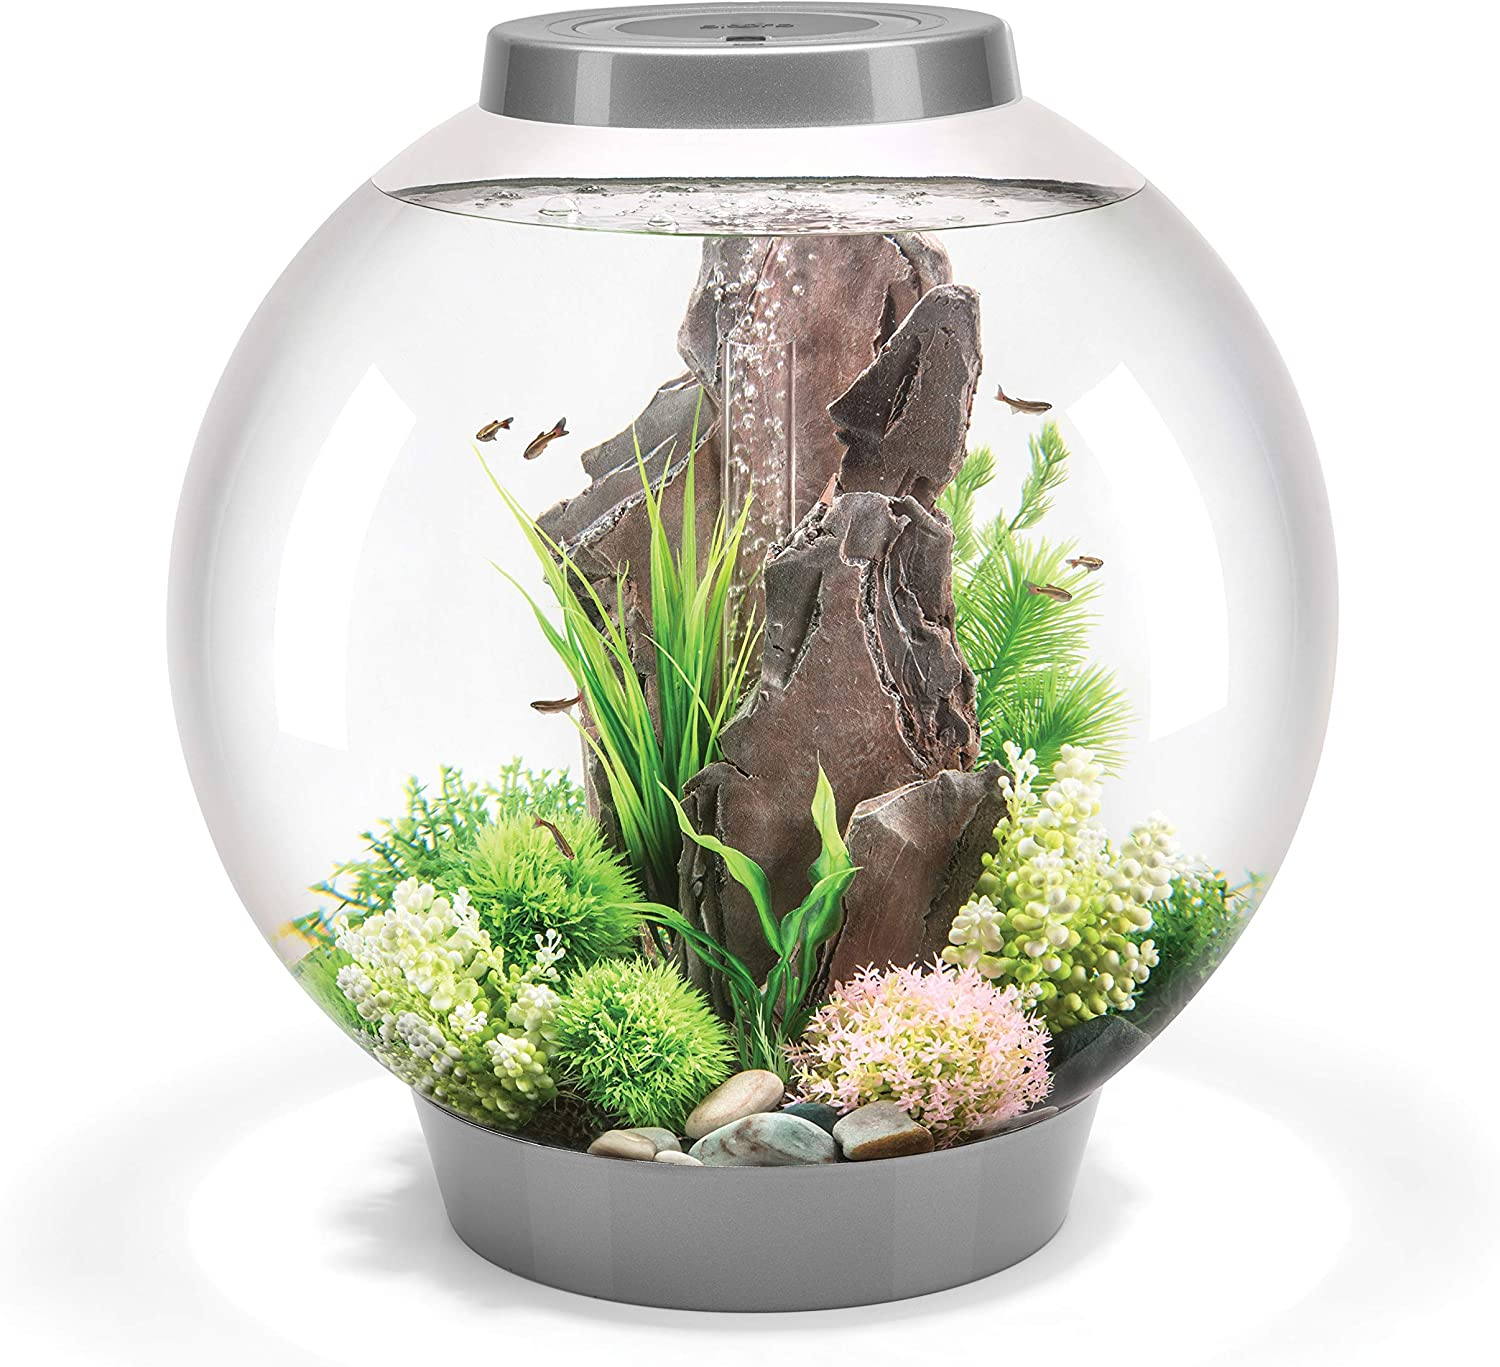 Biorb Classic LED Desktop Aquarium